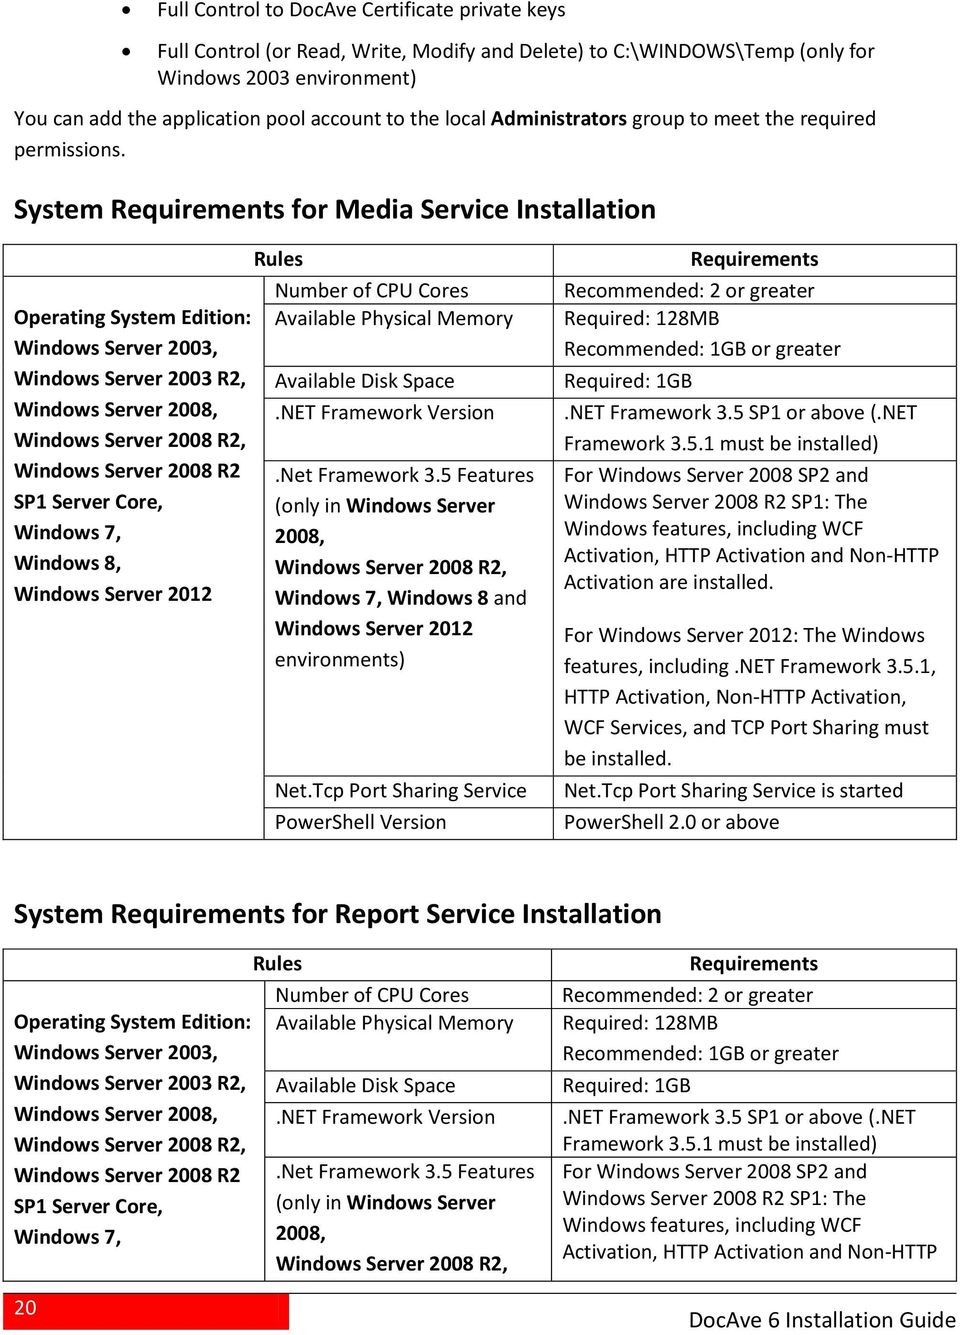 System Requirements fr Media Service Installatin Operating System Editin: Windws Server 2003, Windws Server 2003 R2, Windws Server 2008, Windws Server 2008 R2, Windws Server 2008 R2 SP1 Server Cre,